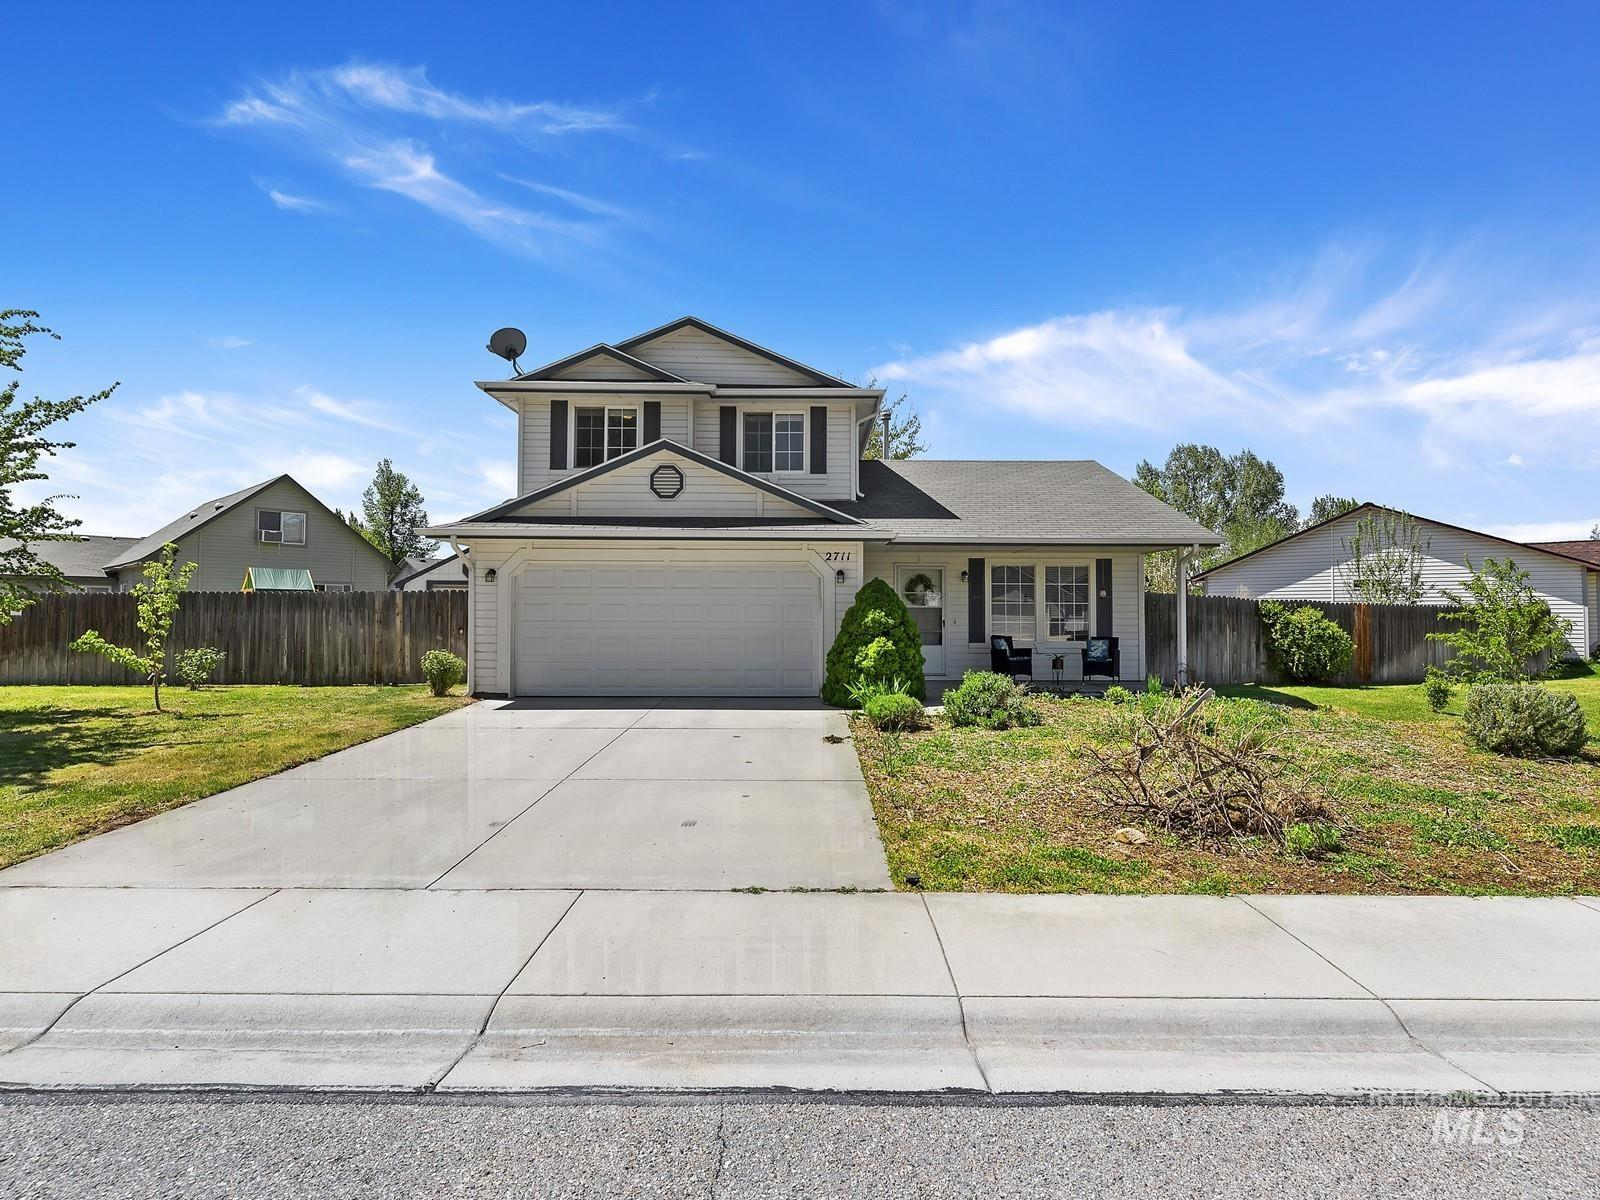 2711 Pebble Way Property Photo - Nampa, ID real estate listing